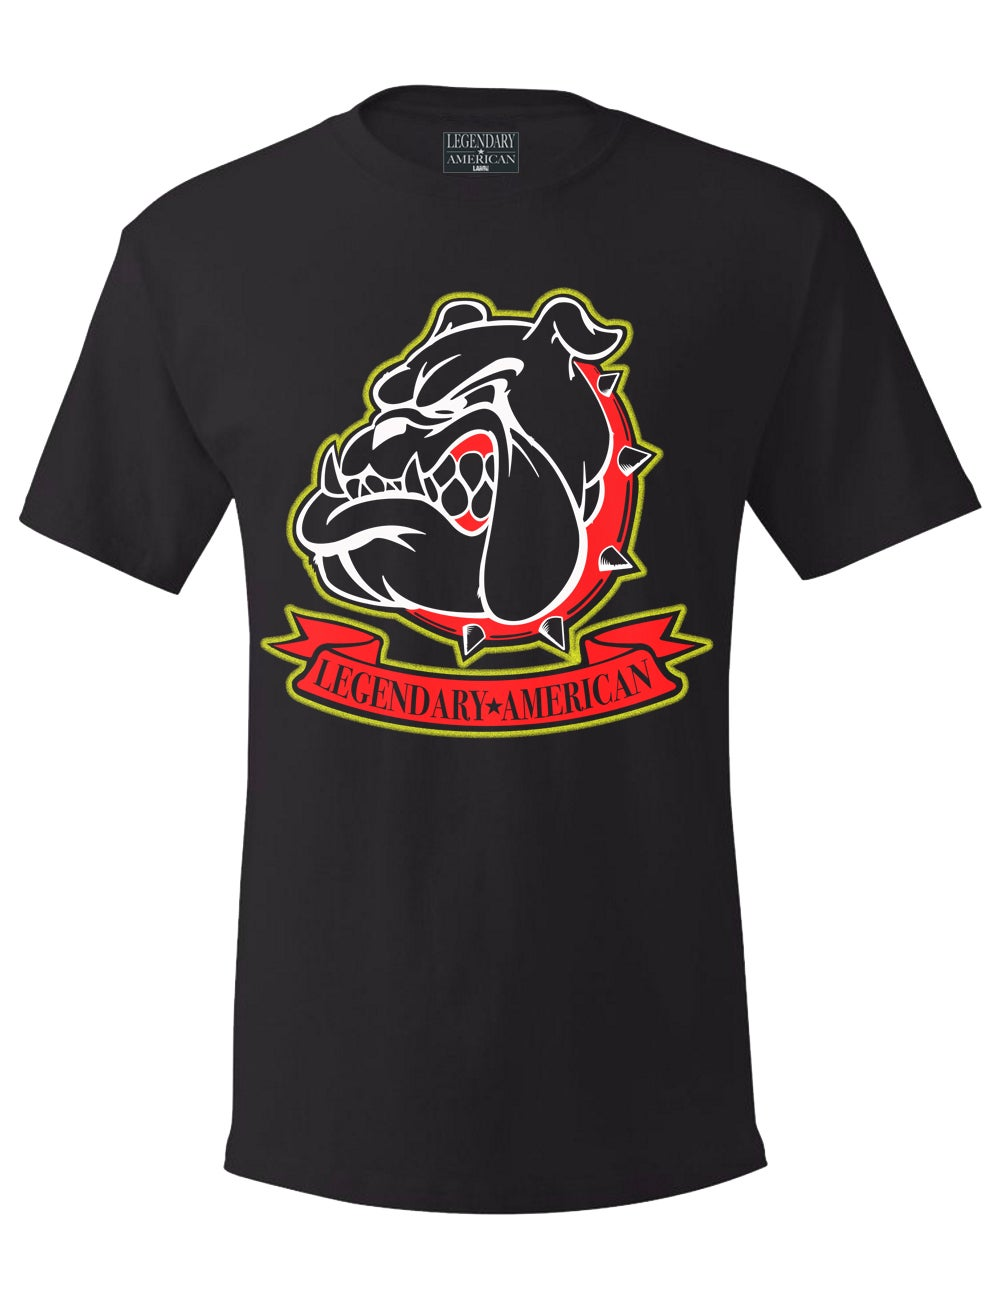 Image of Legendary American Bulldog 18 Tee